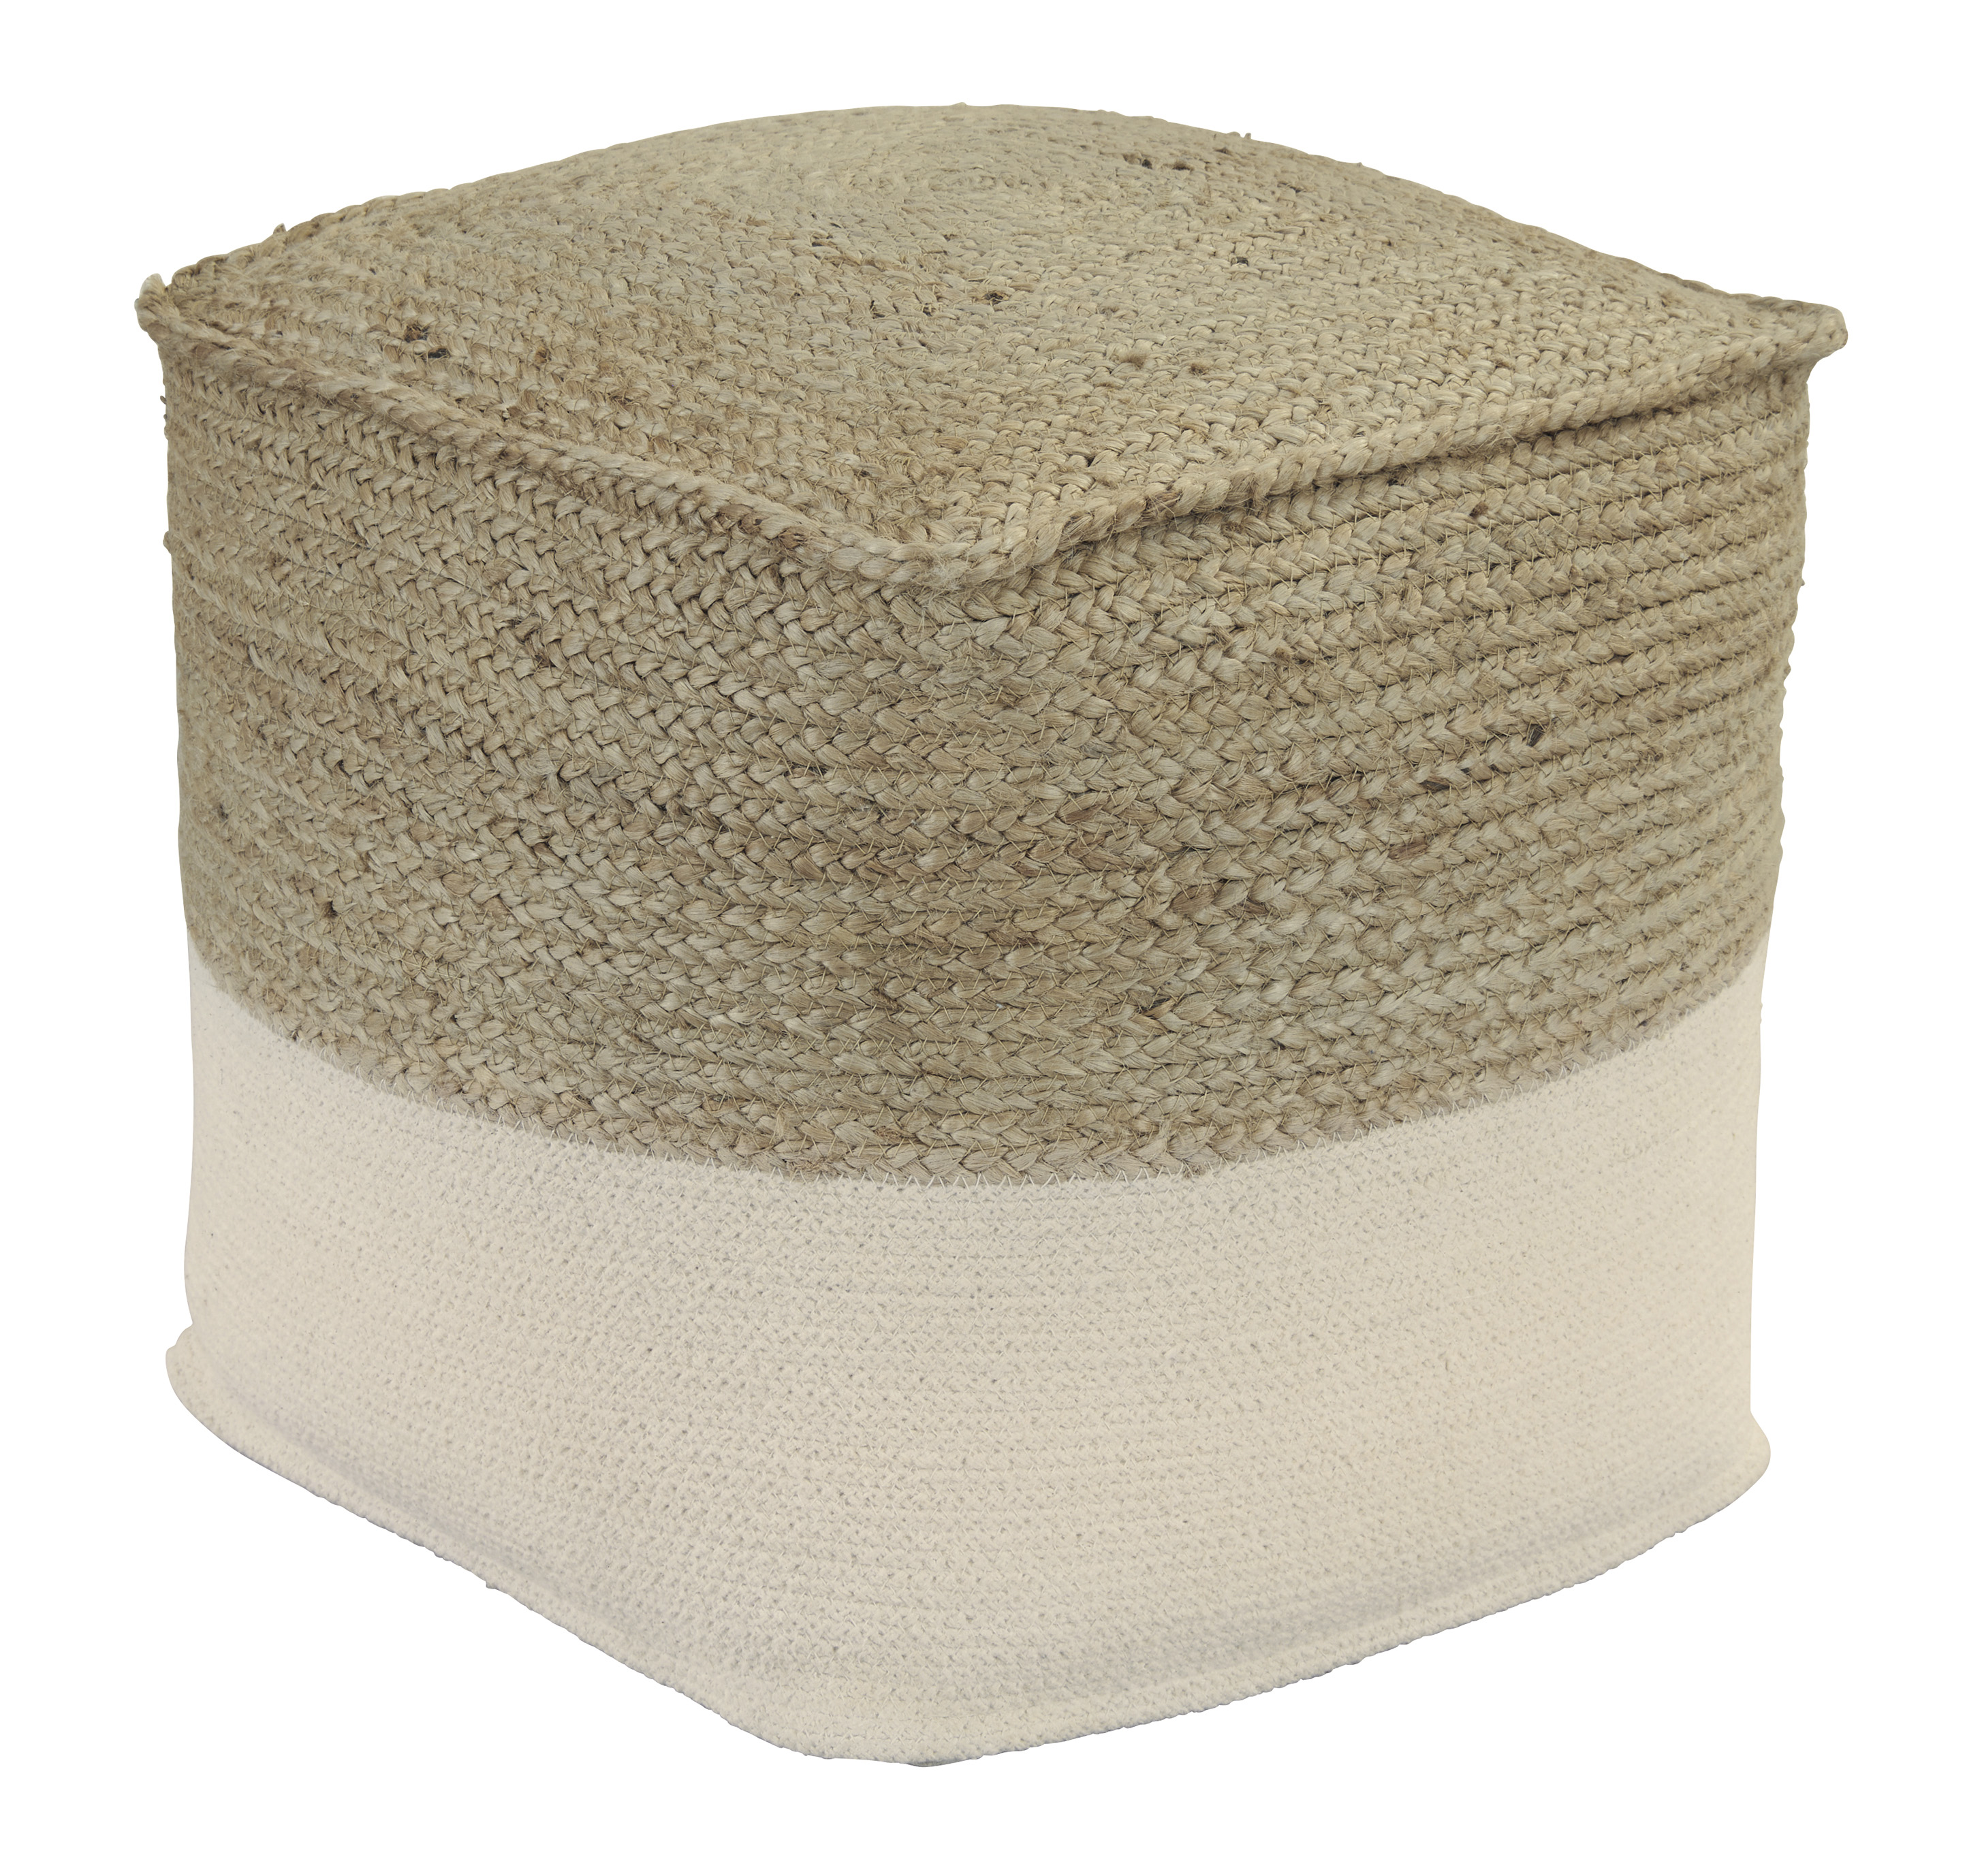 Poufs Sweed Valley Natural/White Pouf by Signature Design by Ashley at Furniture Barn